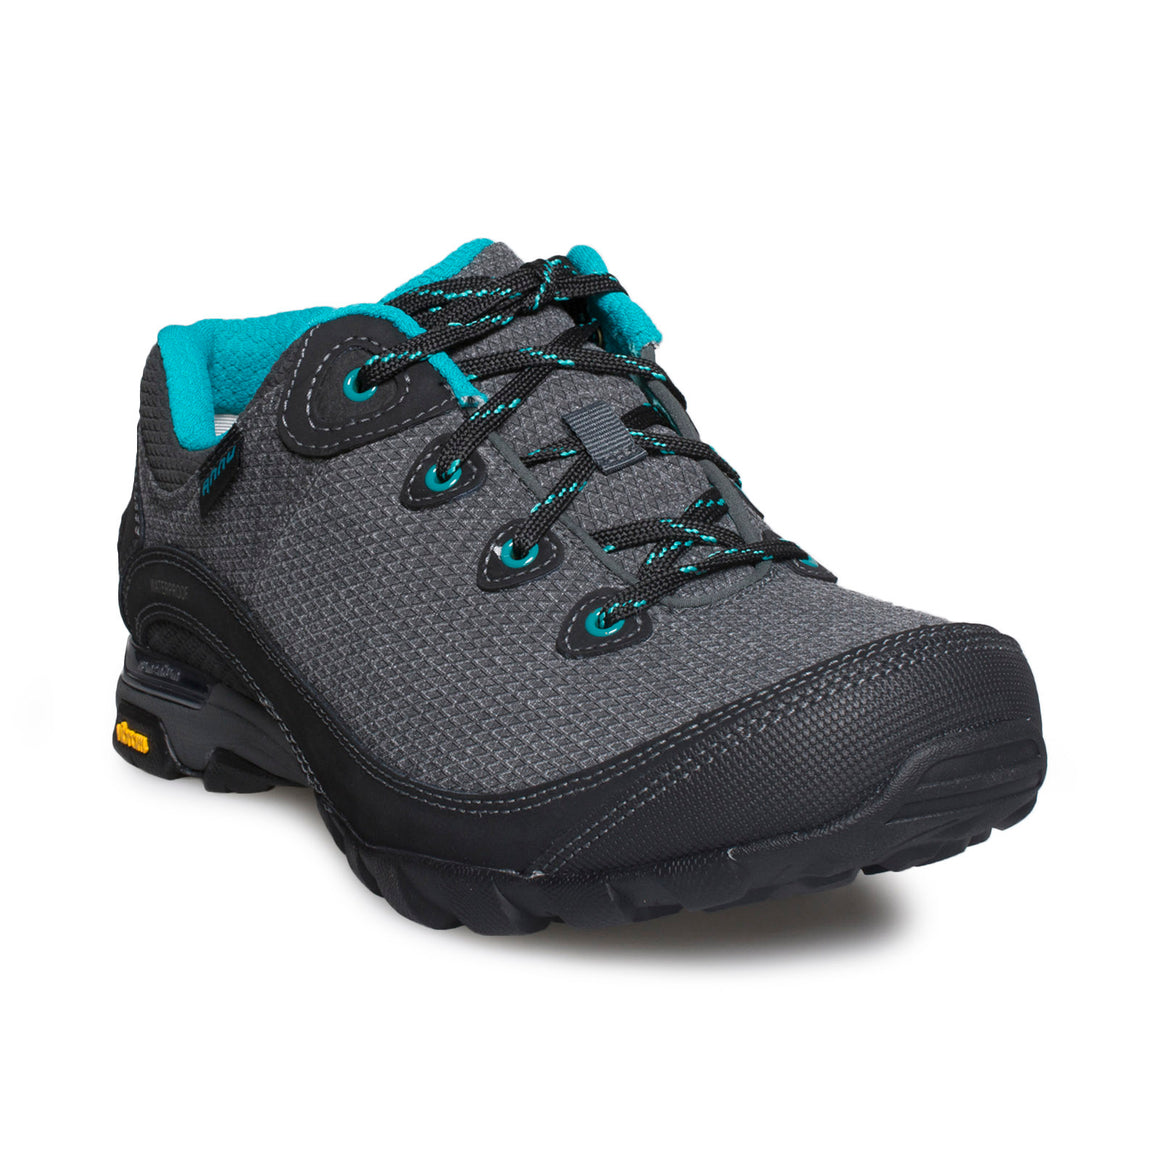 AHNU Sugarpine II Waterproof Black Sneakers - Women's